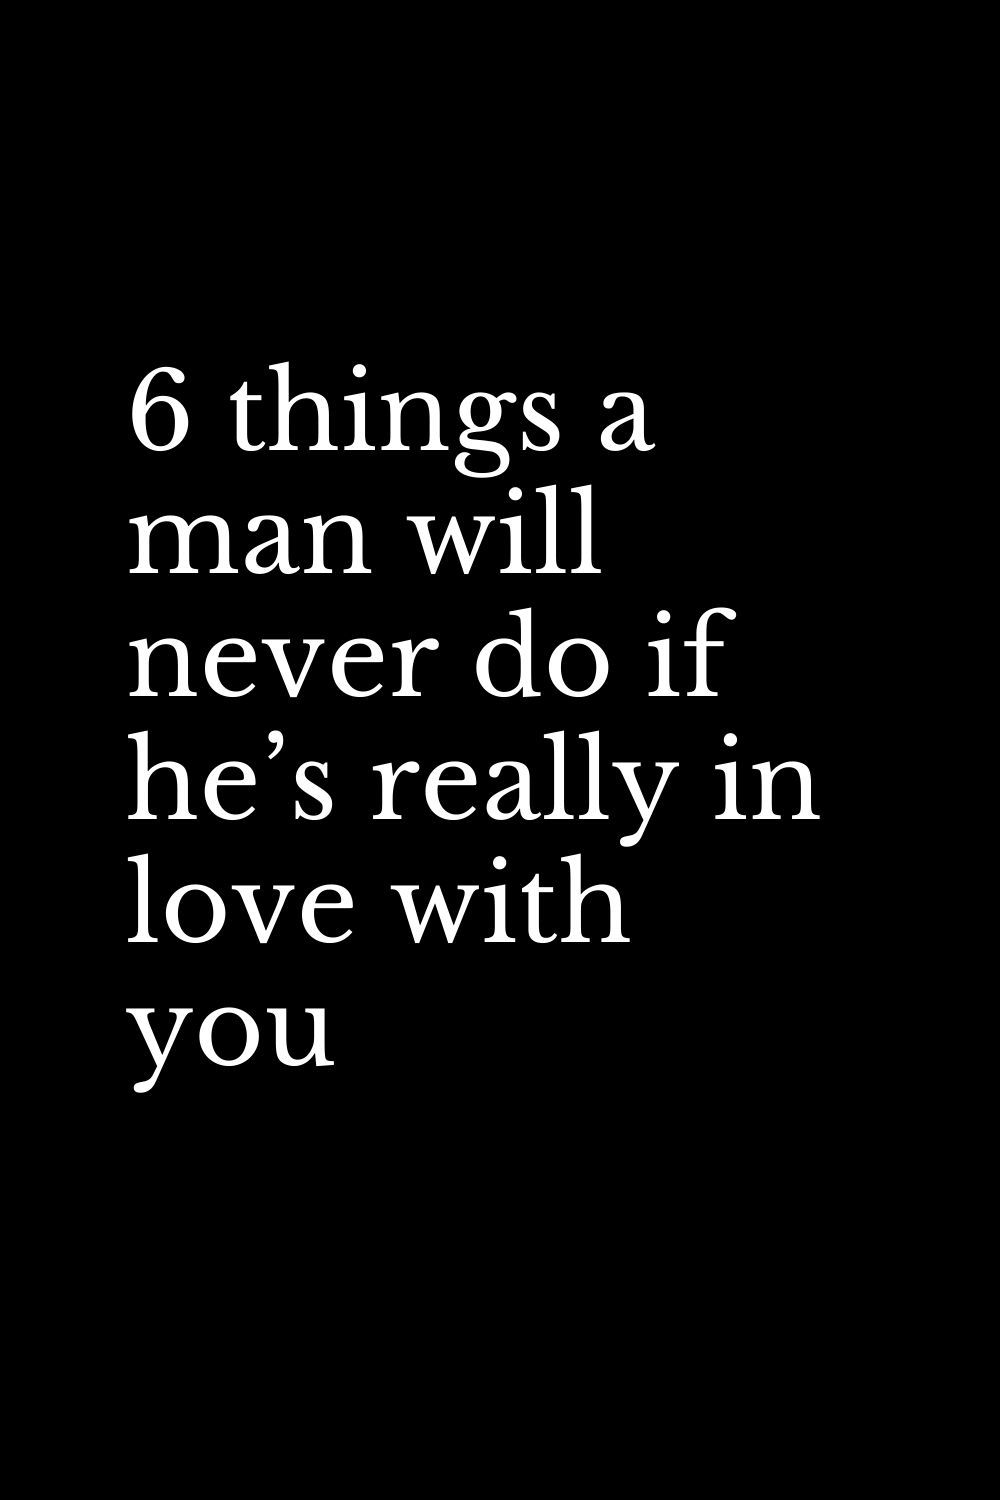 6 things a man will never do if he's really in lov